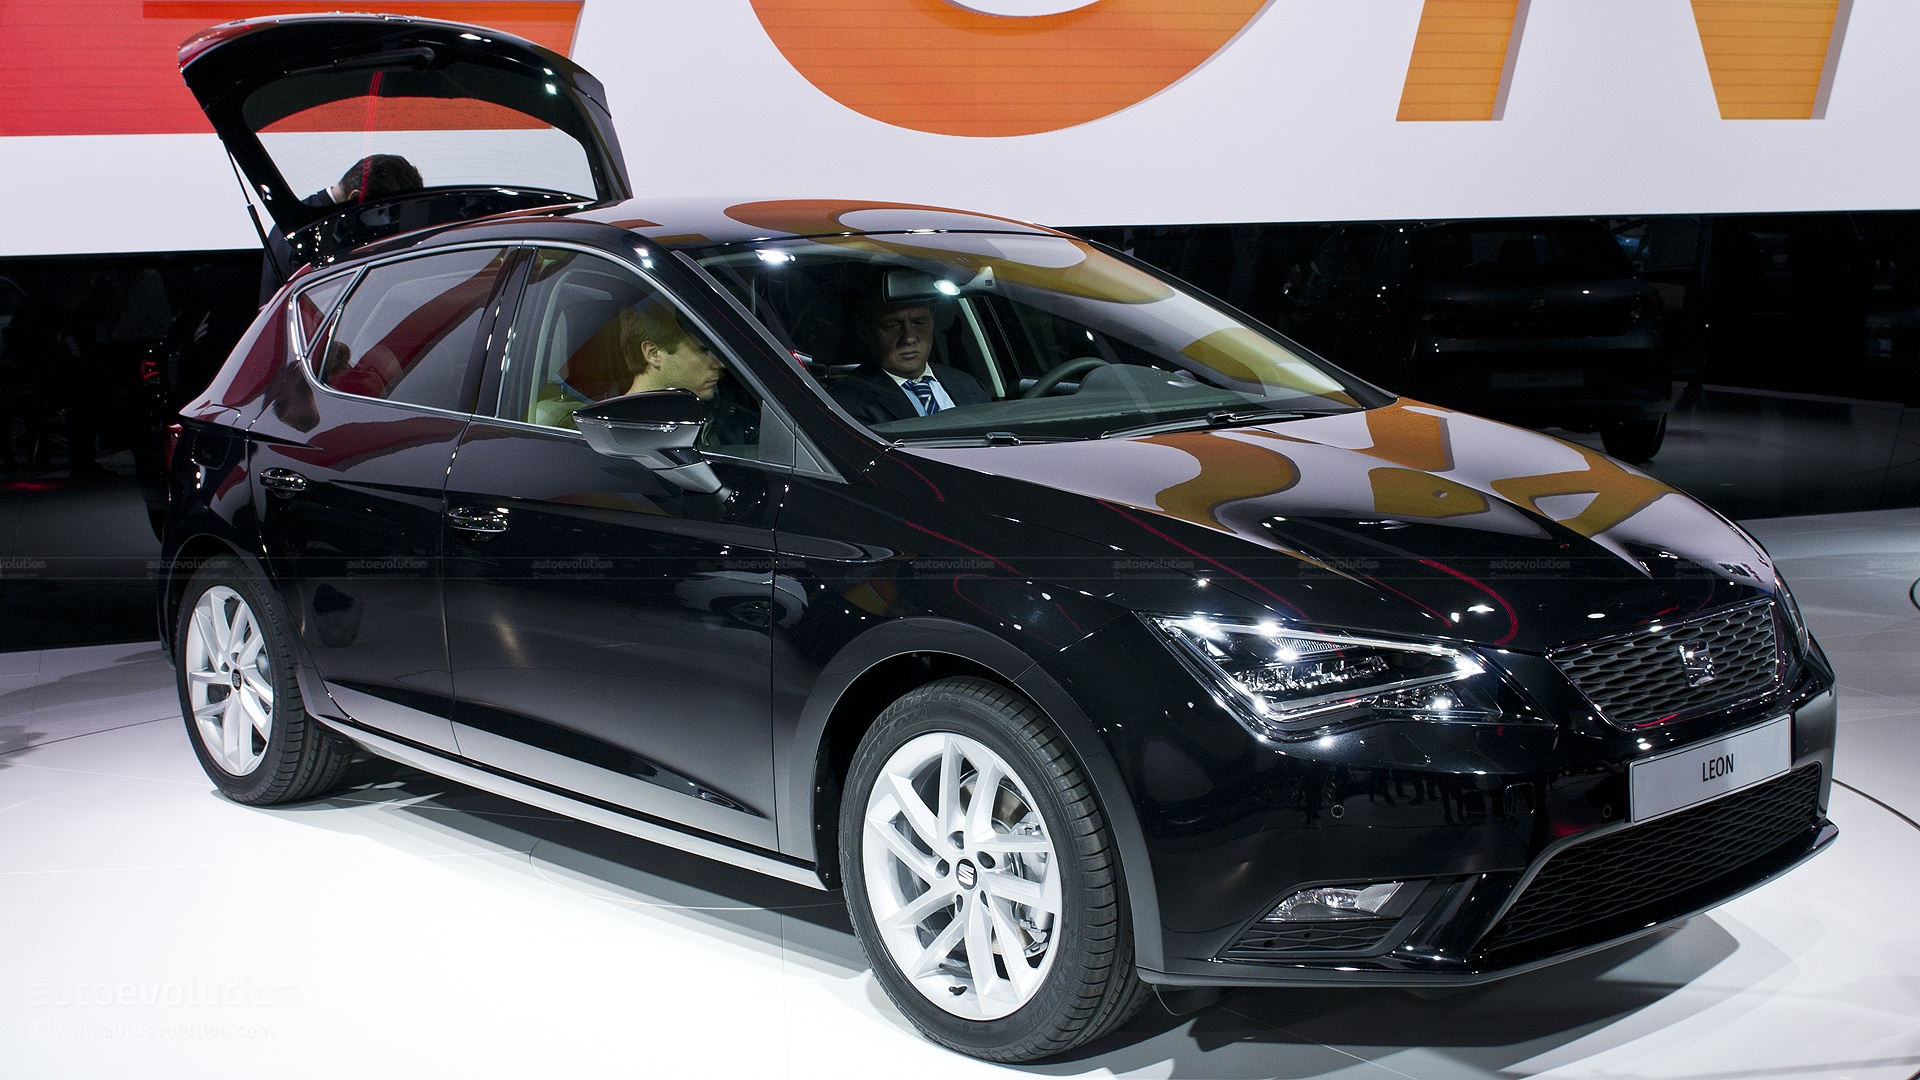 pictures of seat leon iii 2013 auto. Black Bedroom Furniture Sets. Home Design Ideas